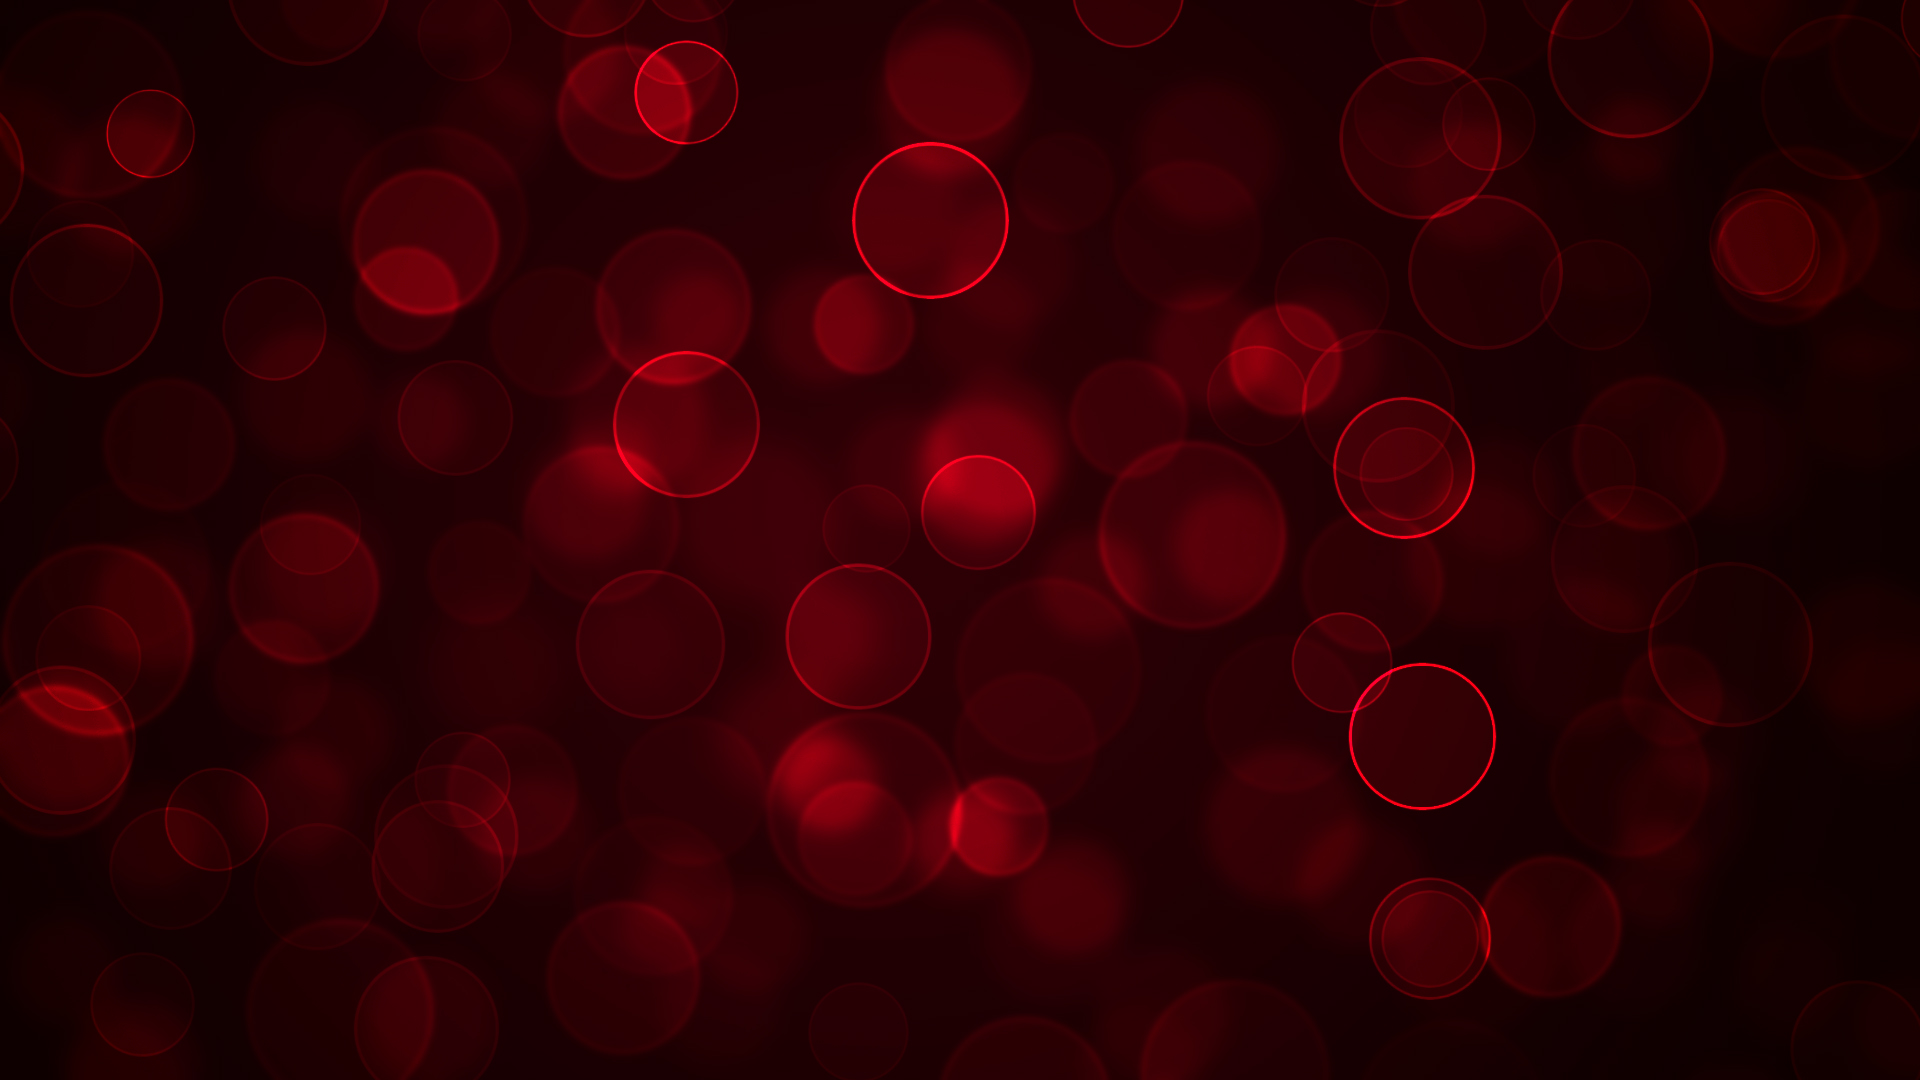 Red Abstract wallpaper | 1920x1080 | #57742